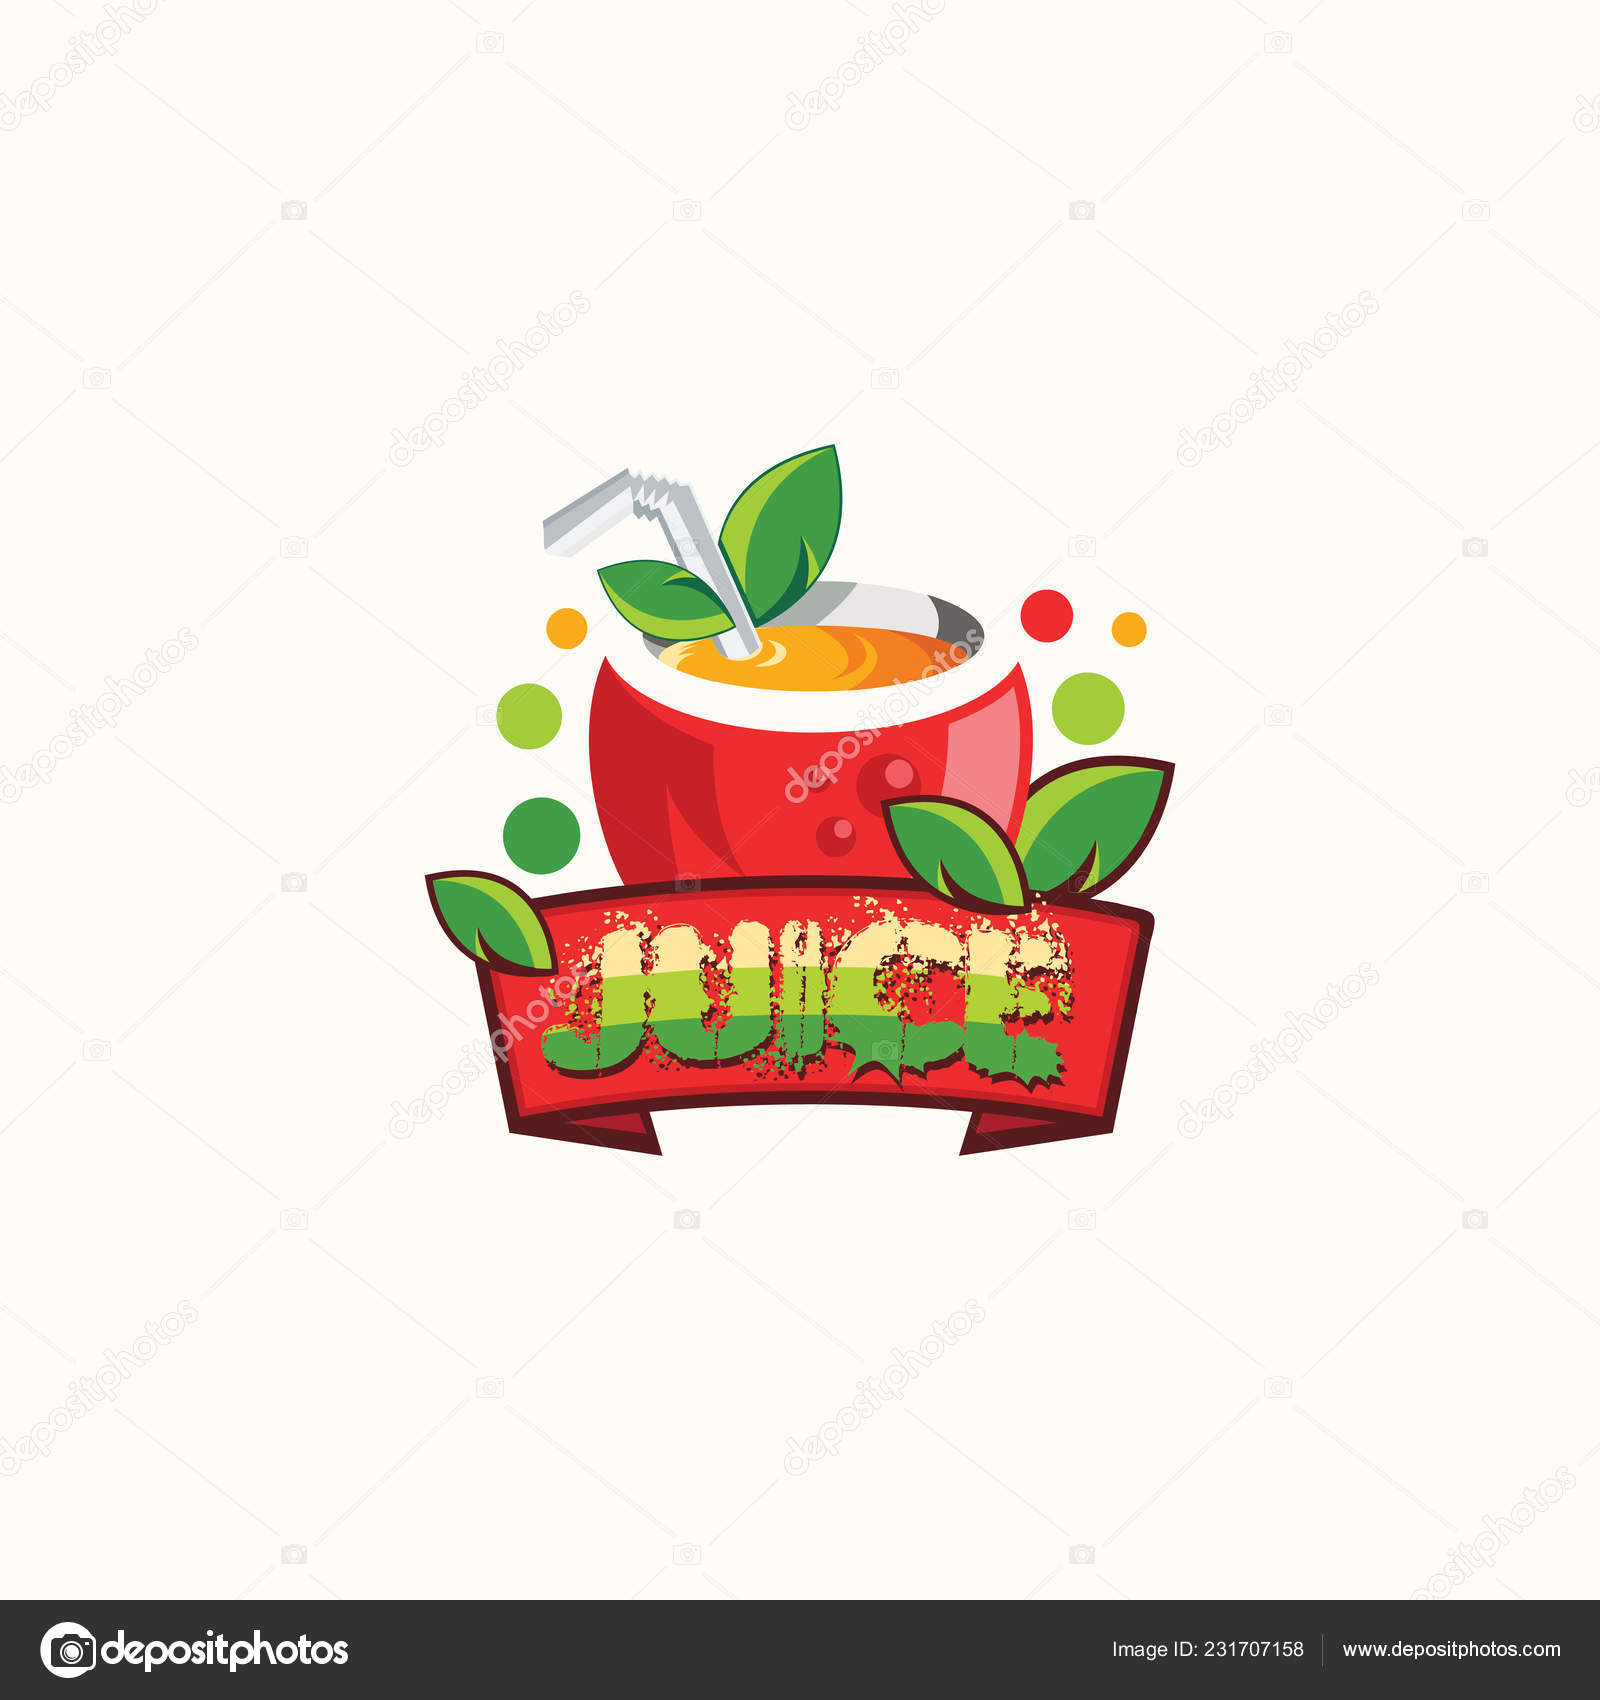 fruit juice logo design fruit juice logo design fresh drink logo vector stock vector c wahyutriasyadi84 gmail com 231707158 https depositphotos com 231707158 stock illustration fruit juice logo design fresh html